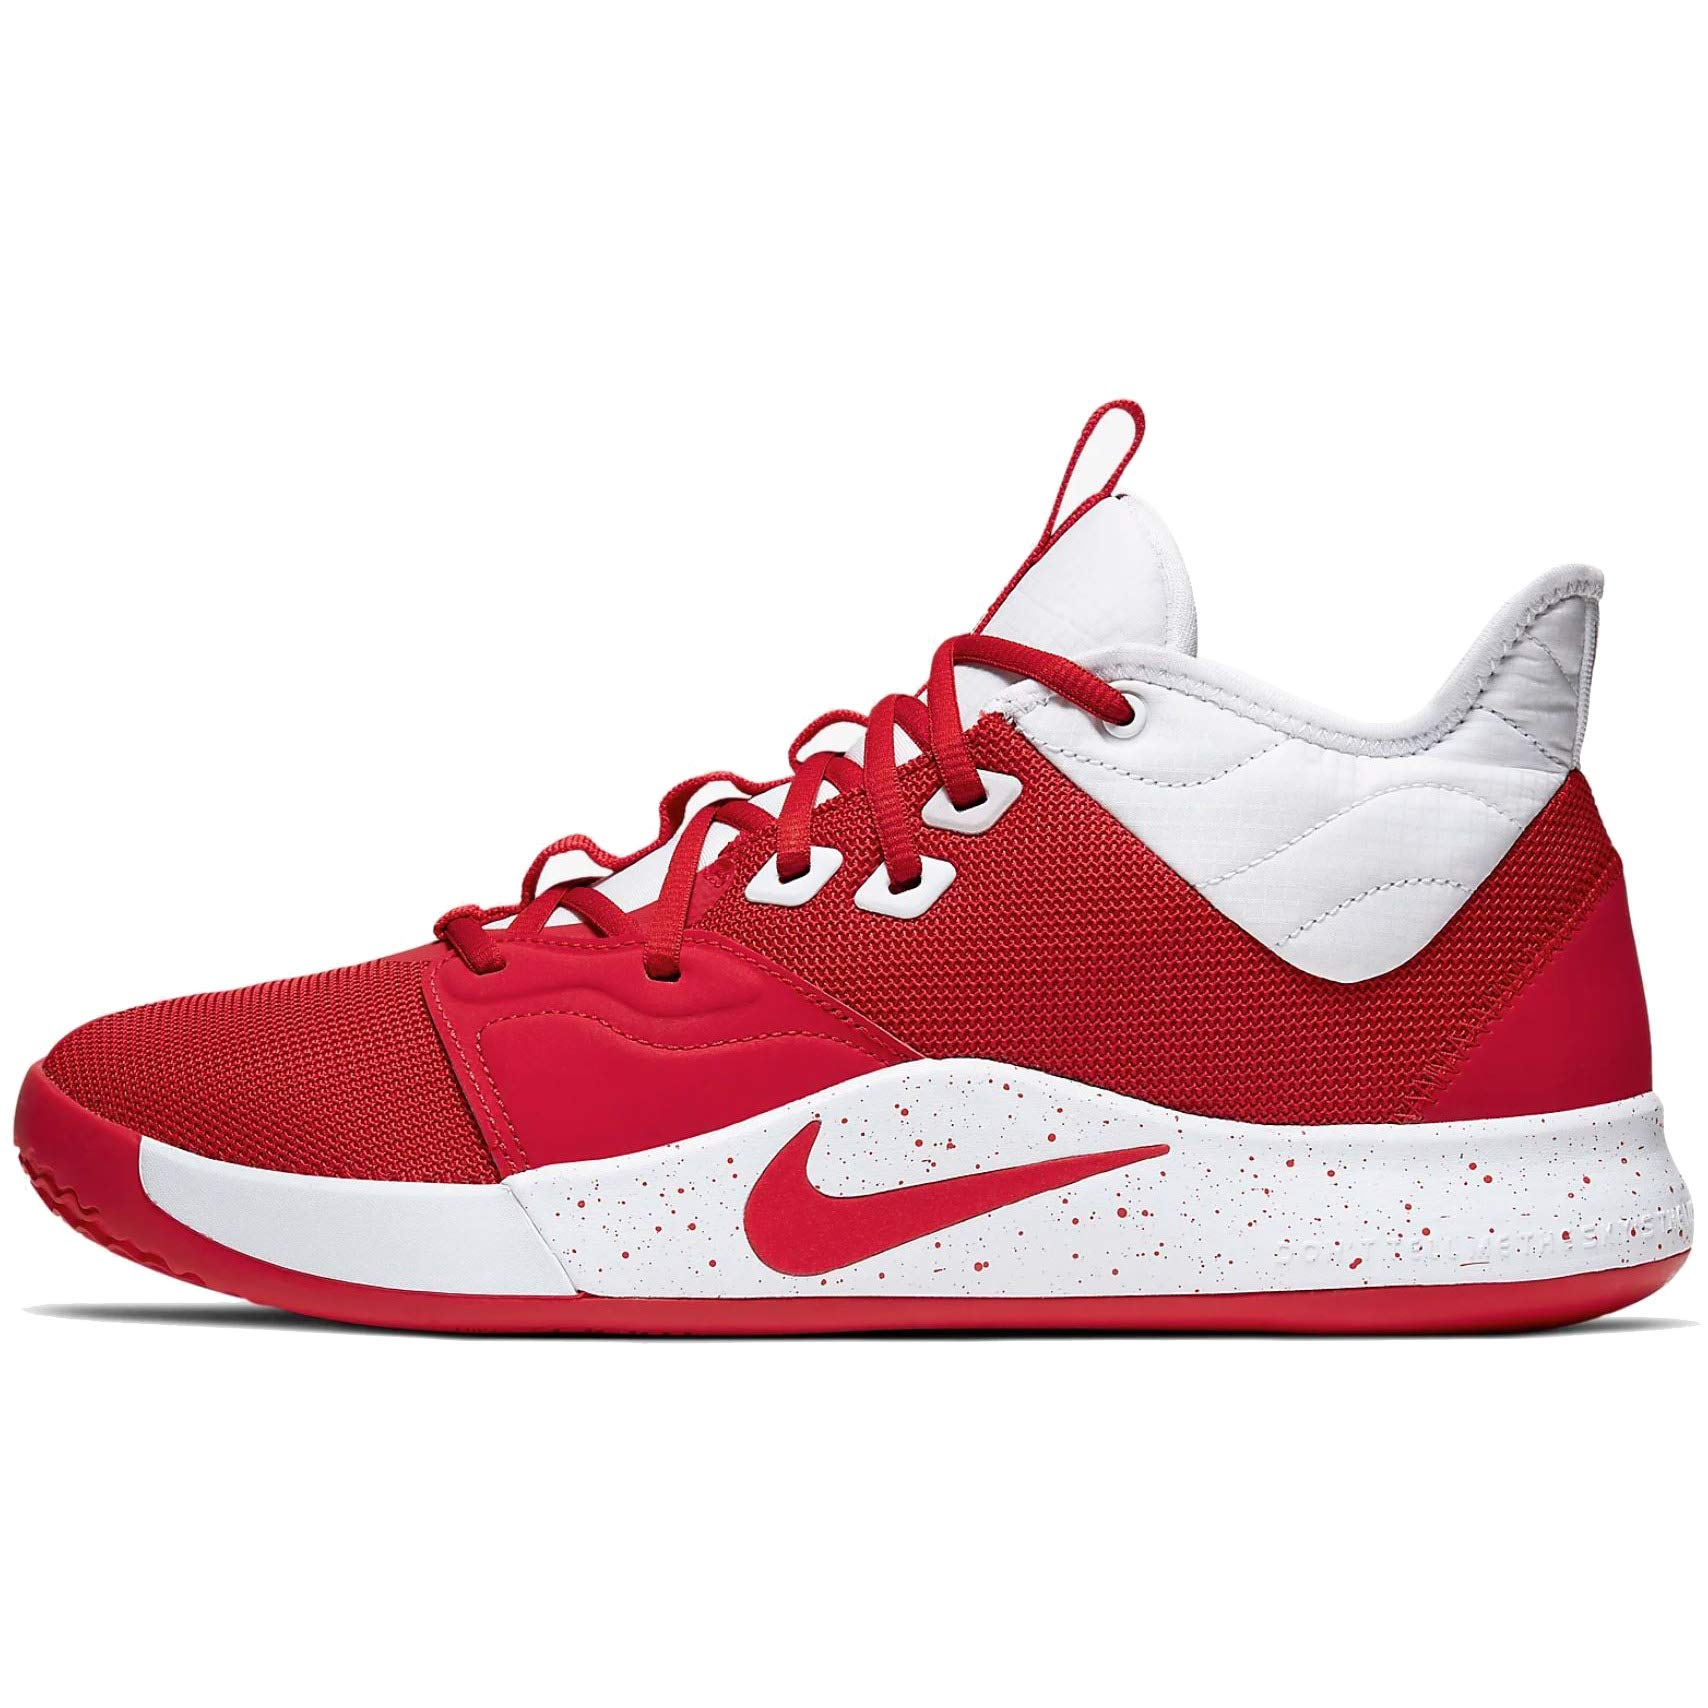 Pg 3 Tb Paul George Basketball Shoes